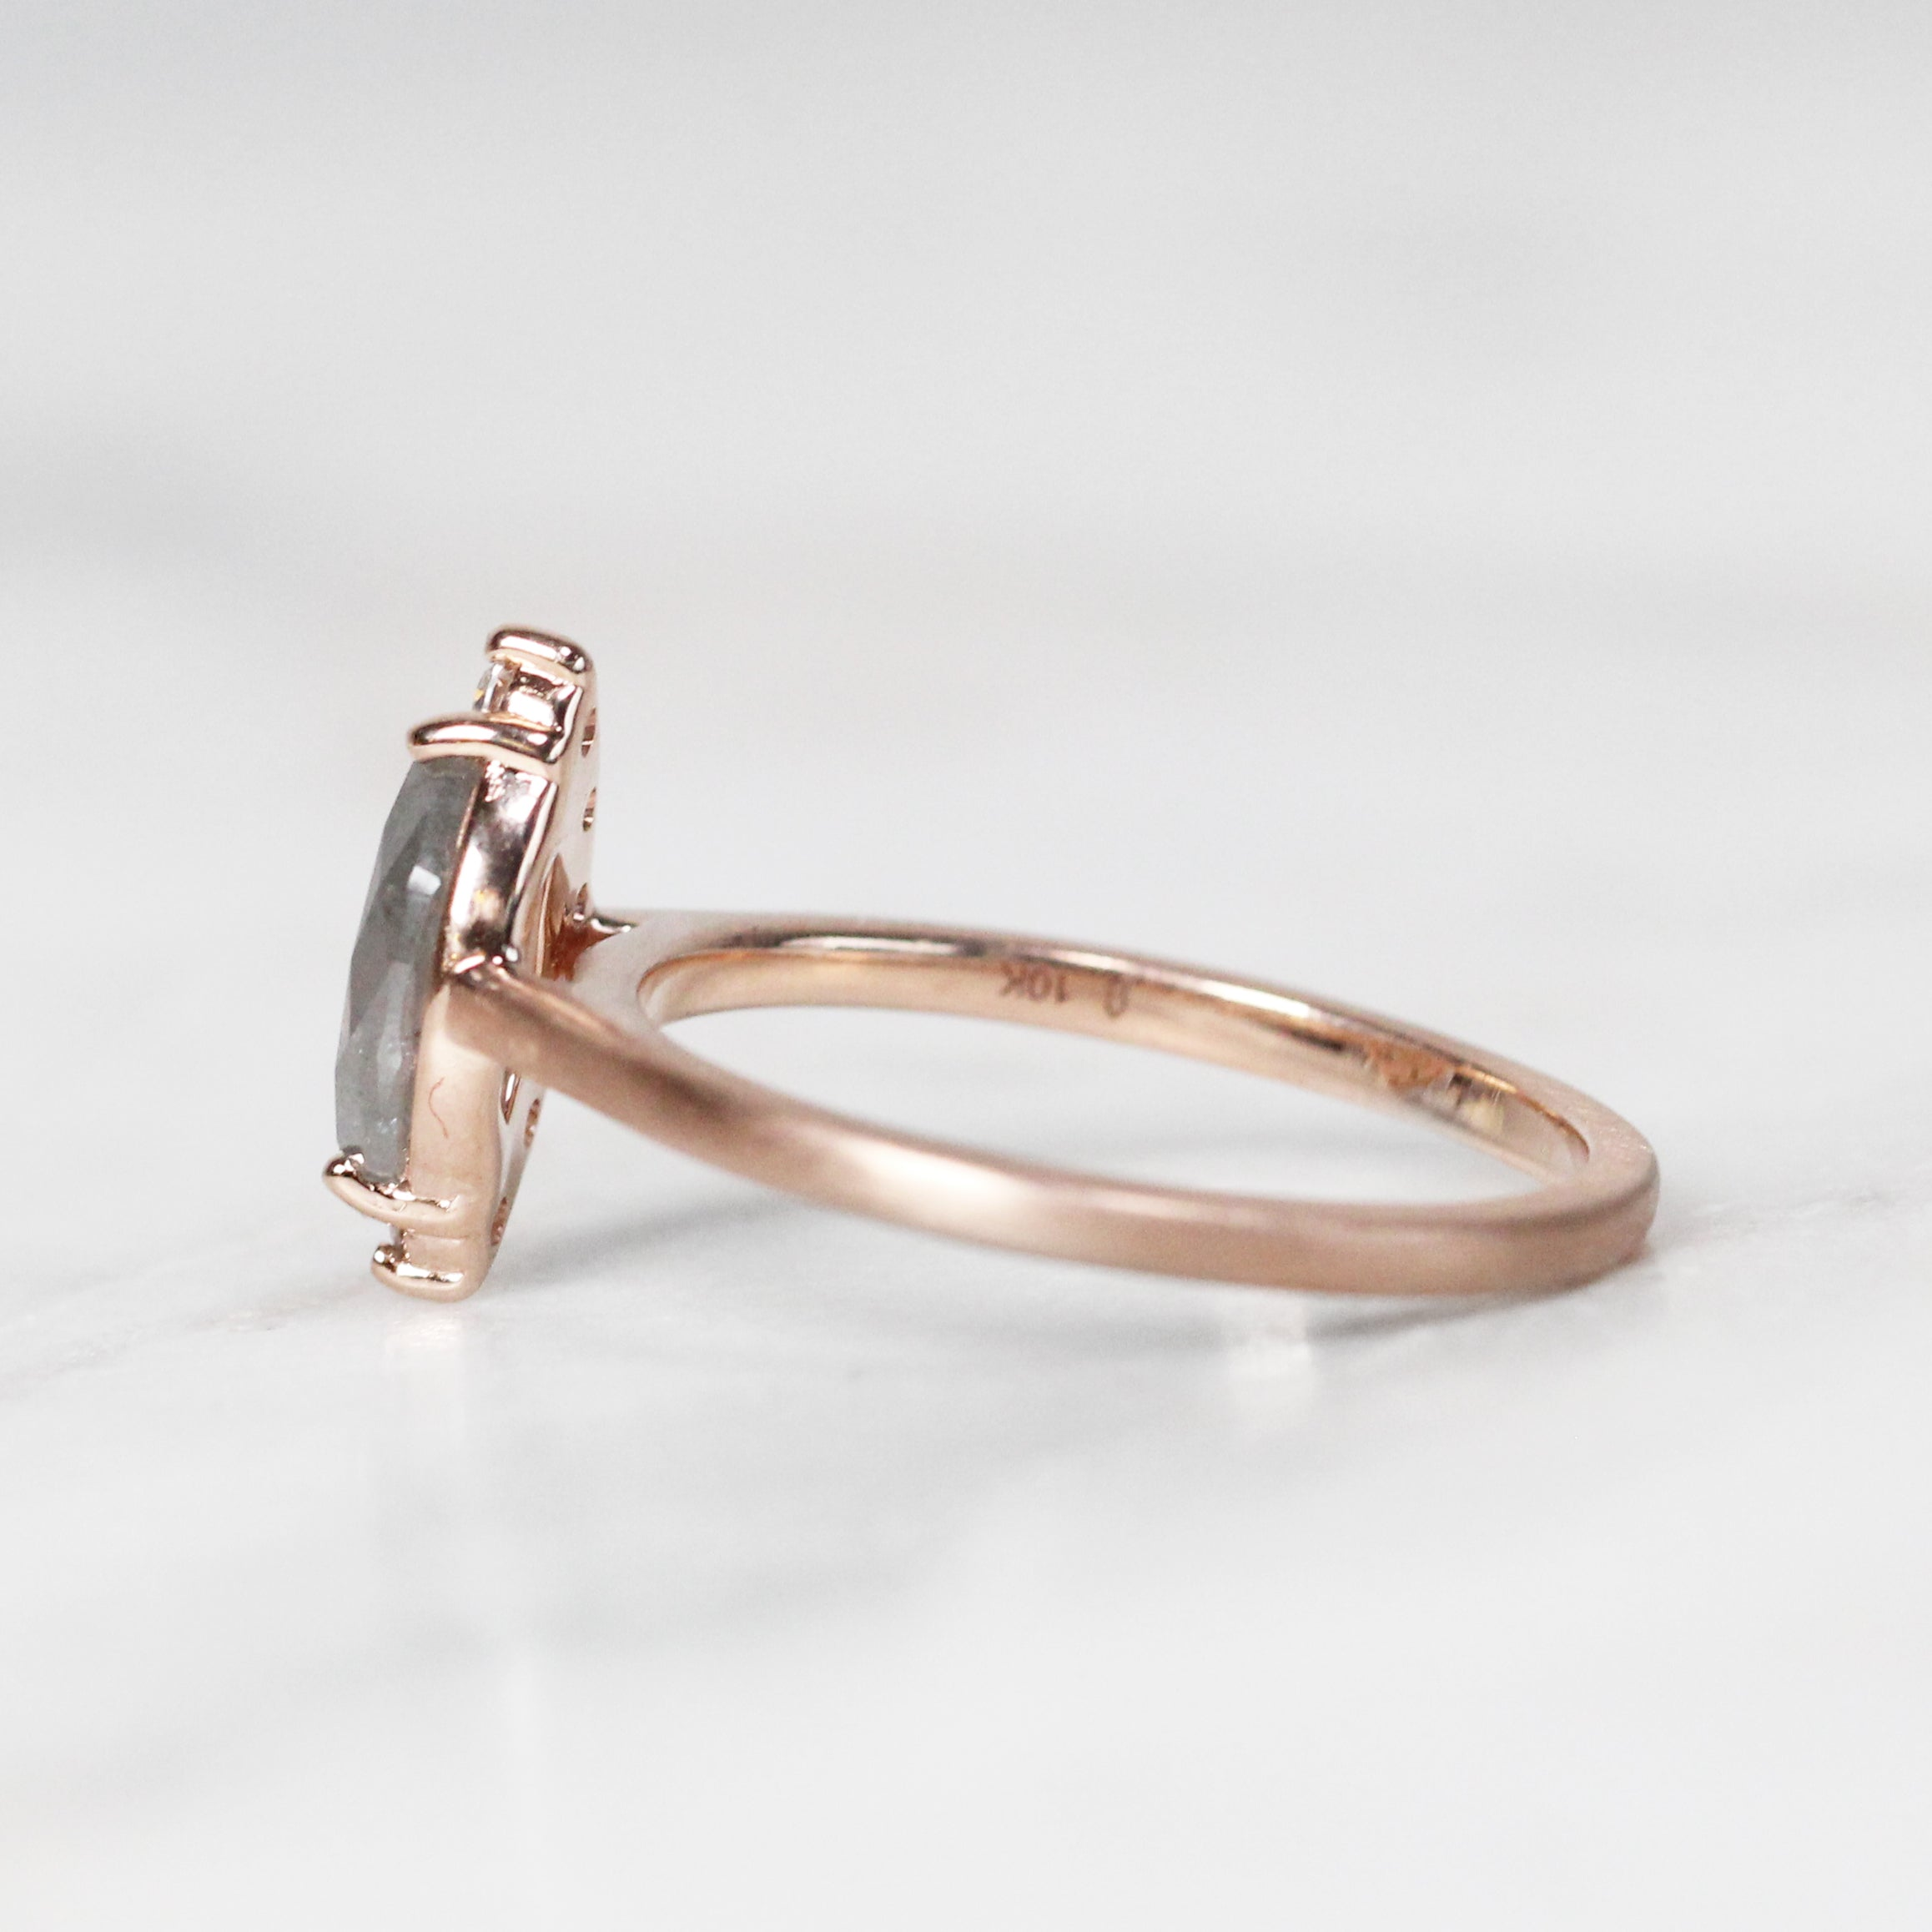 Andrue Ring with .80 Carat Marquise Celestial Diamond in 10k Rose Gold- Ready to Size and Ship - Salt & Pepper Celestial Diamond Engagement Rings and Wedding Bands  by Midwinter Co.